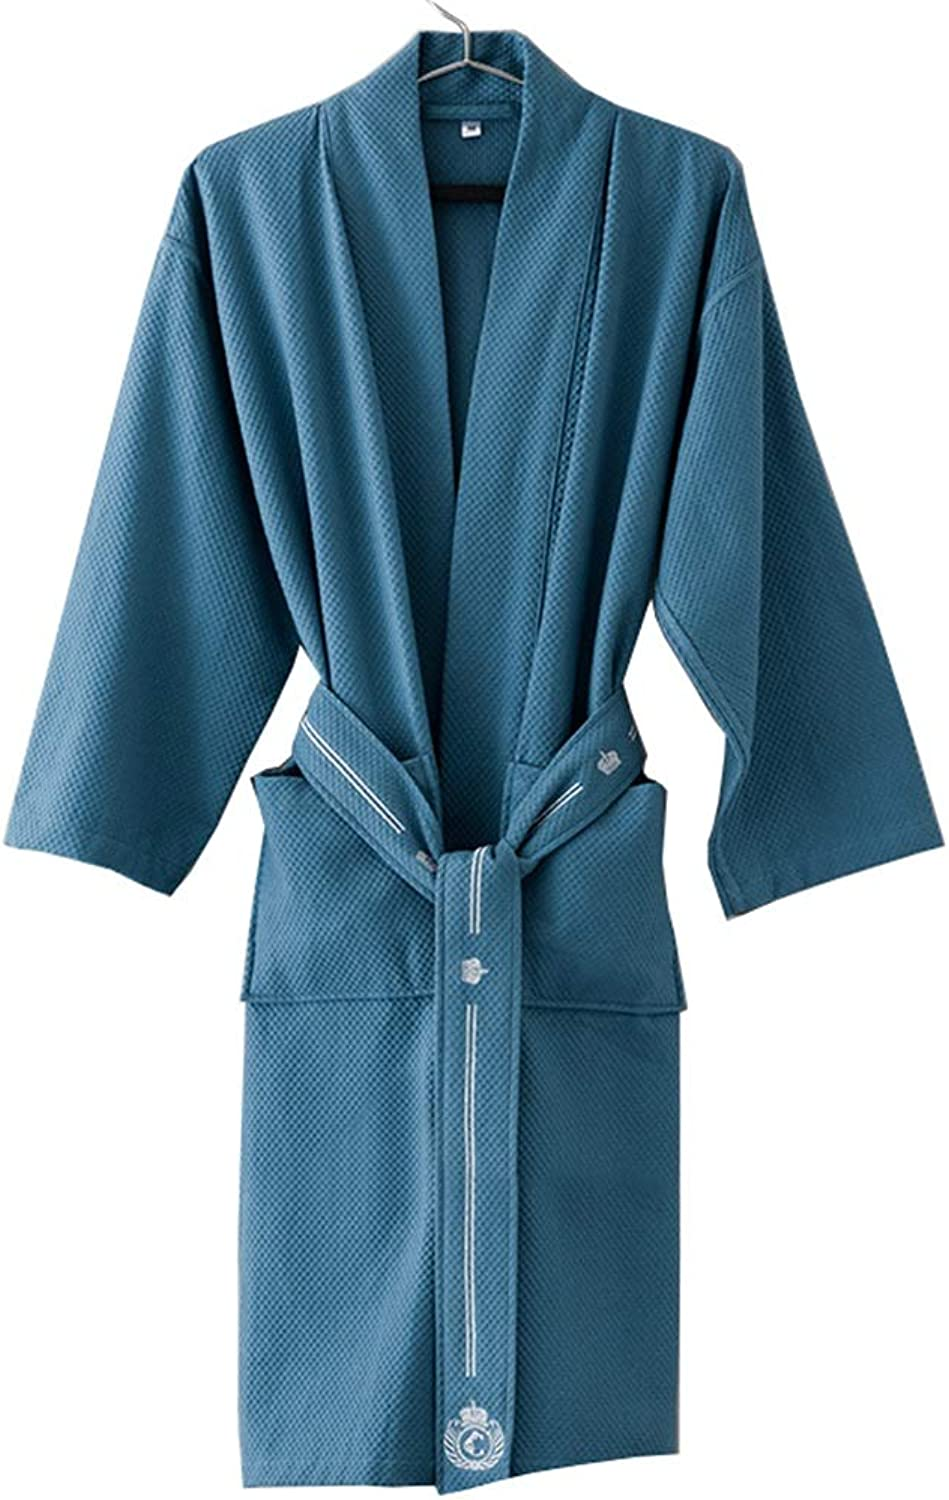 Long Bathrobe Shawl Thick Cotton Kimono Collar Robes Full Bath Towel Strong Water Absorption   Couple Models  bluee (Size   L)